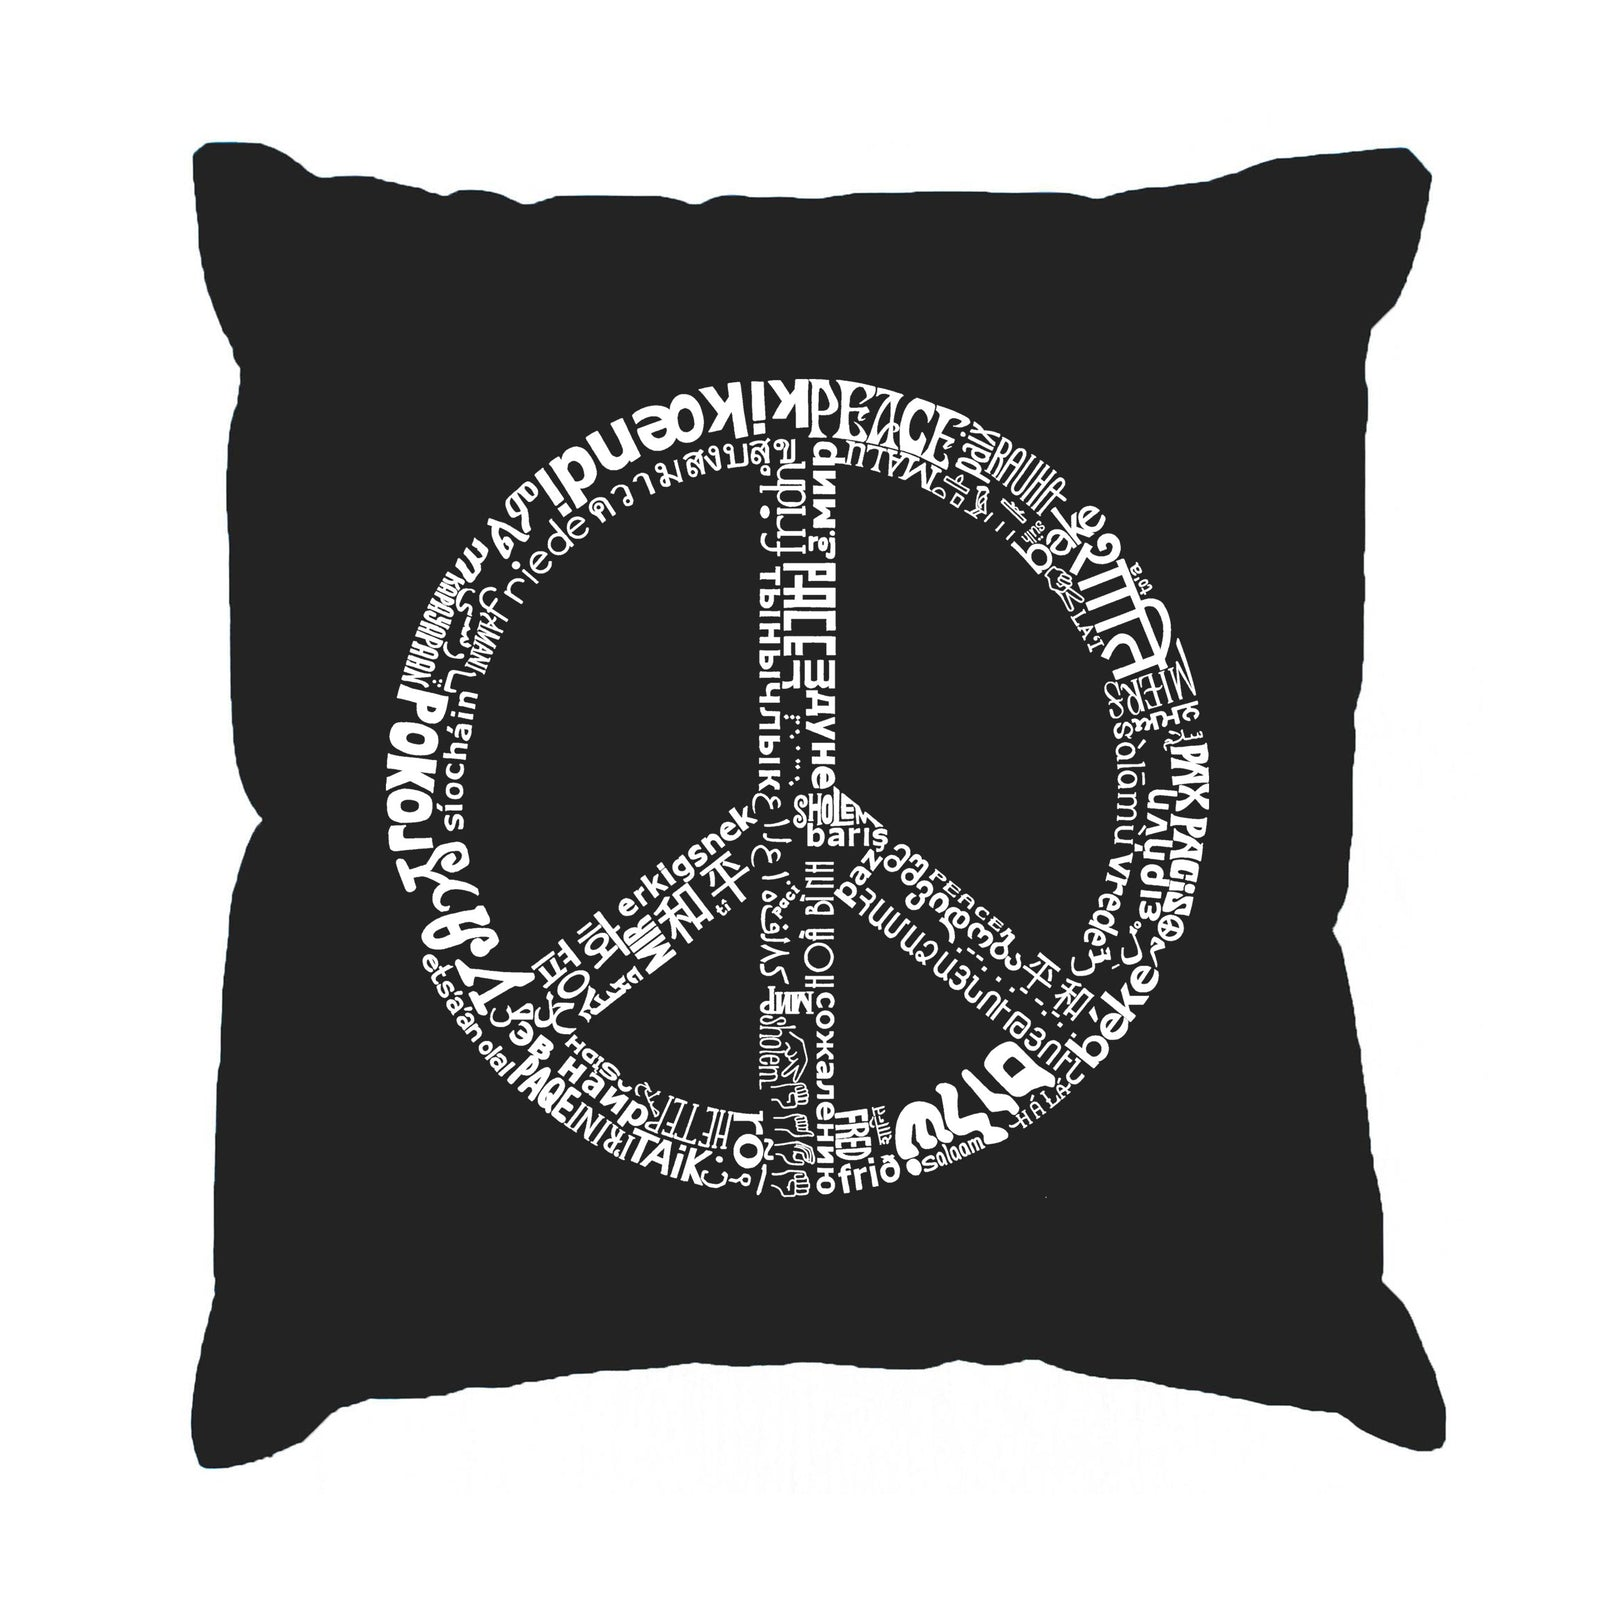 Throw Pillow Cover - THE WORD PEACE IN 77 LANGUAGES